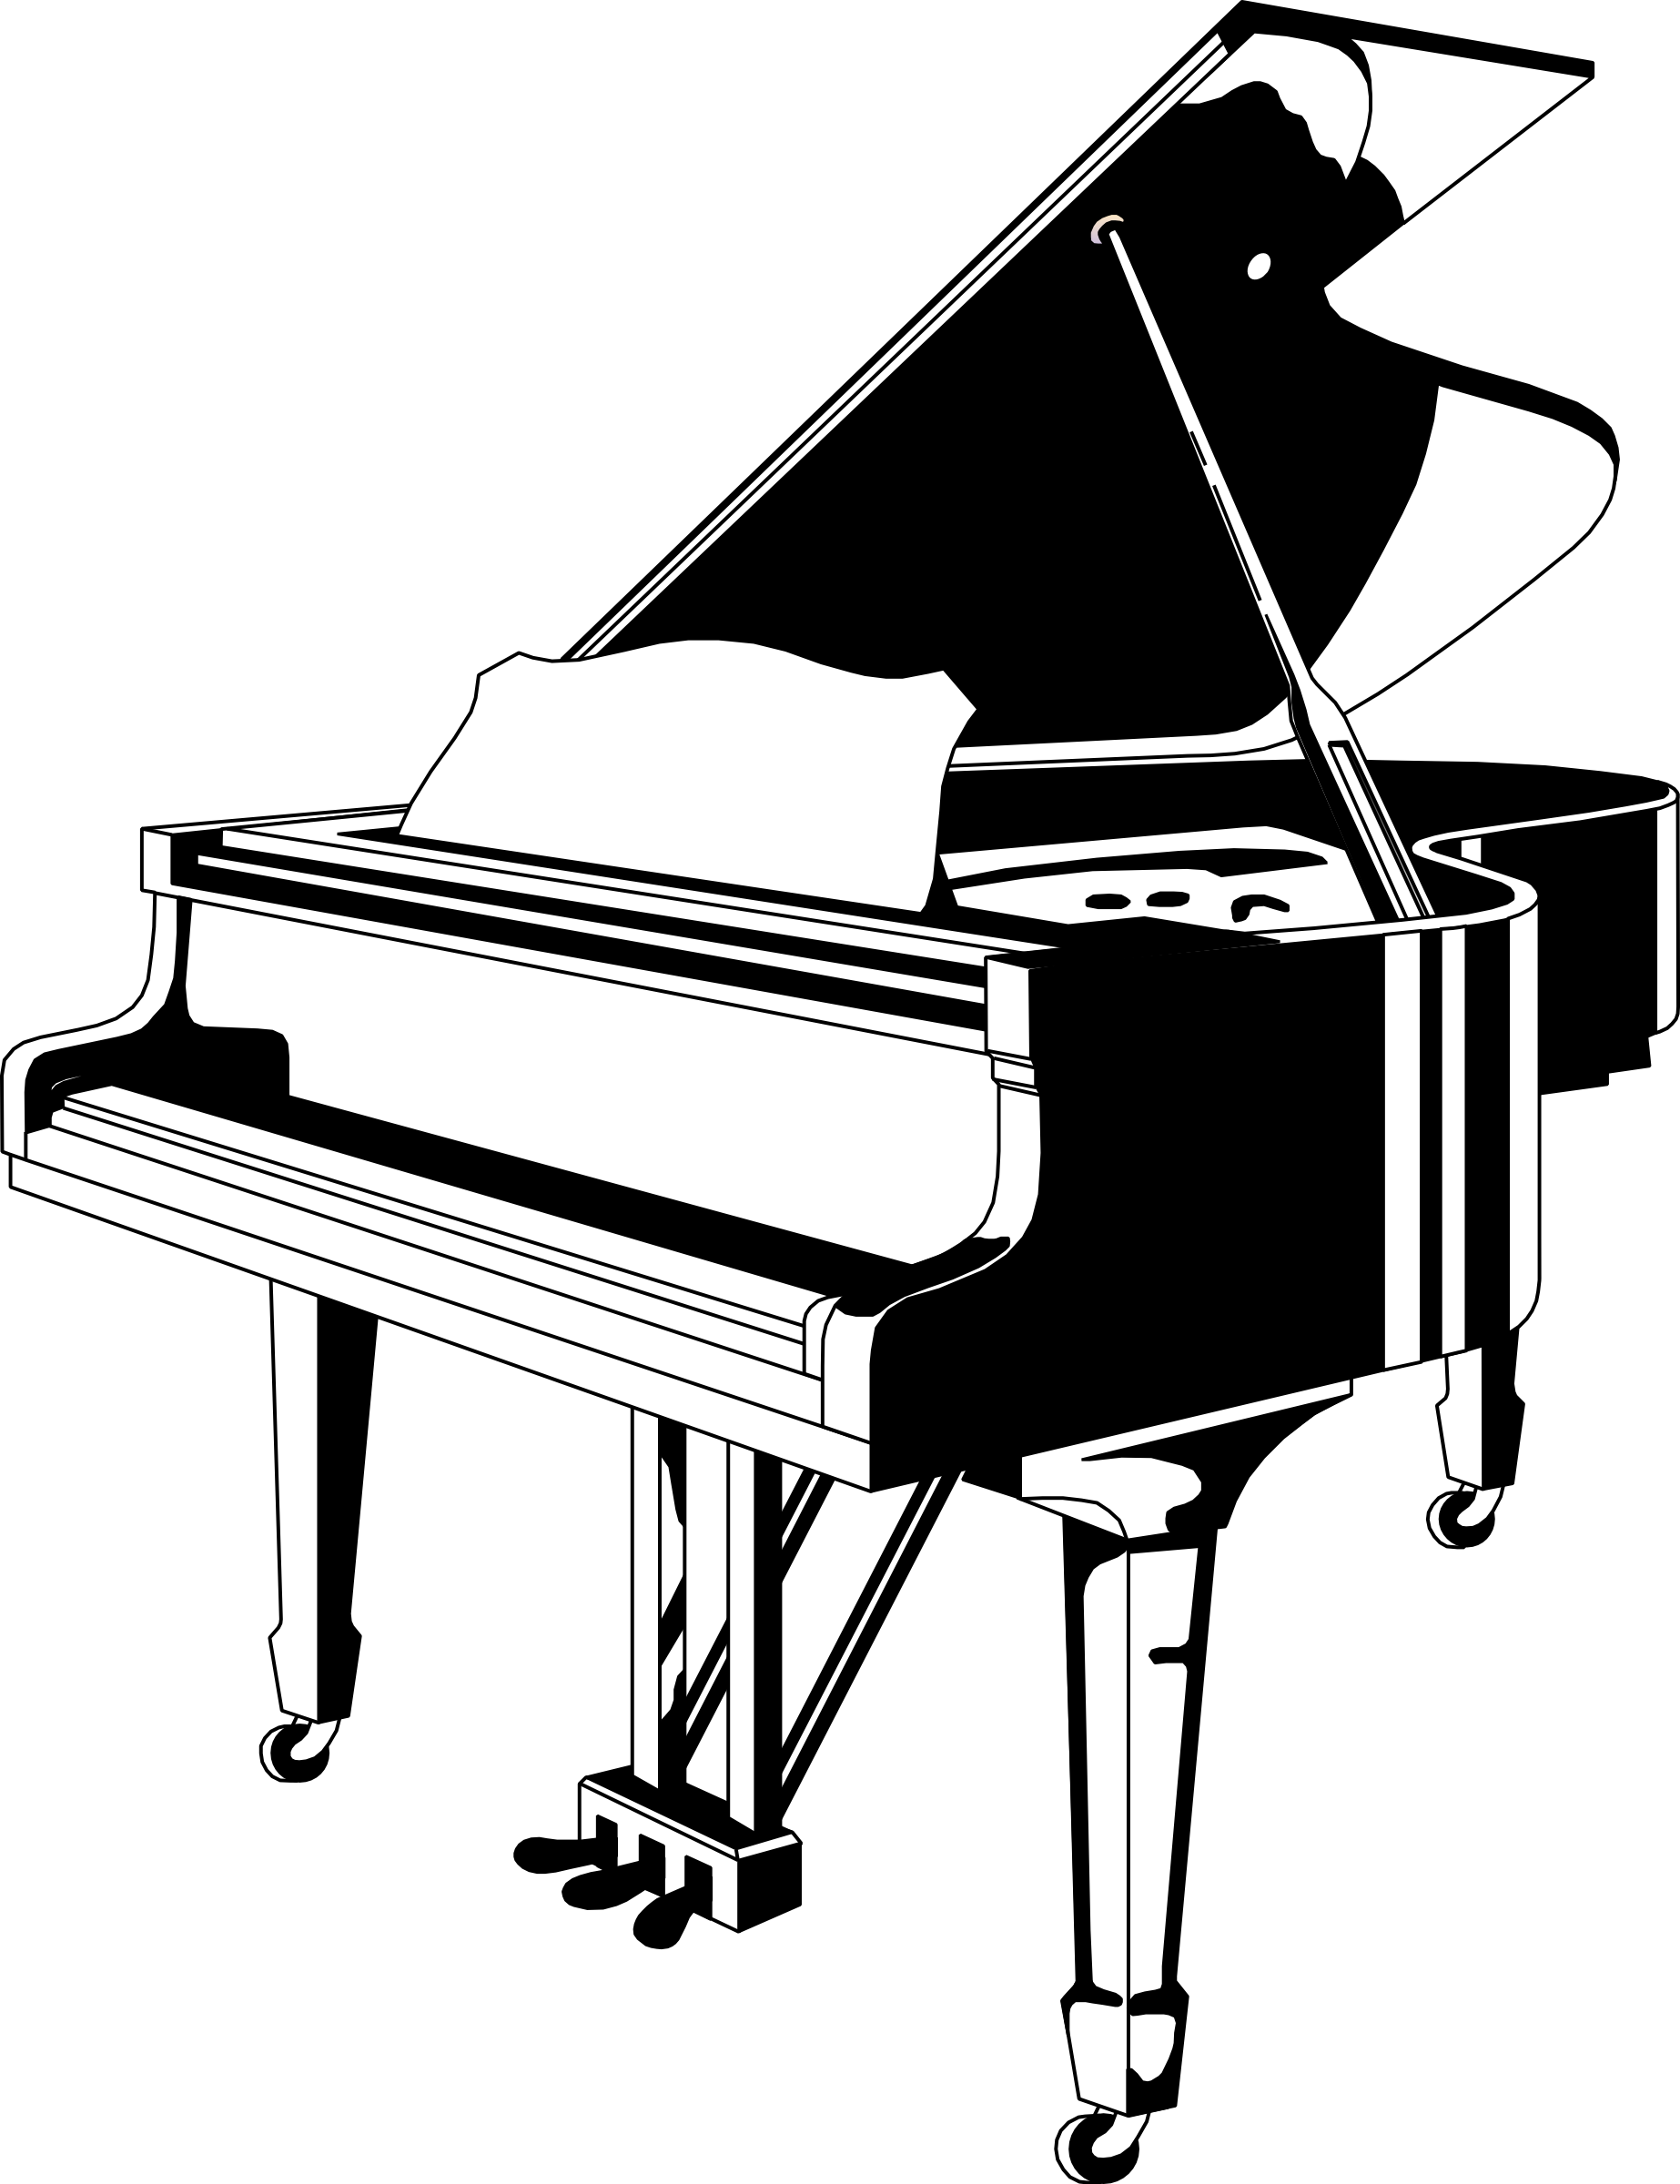 Piano clipart little girl. Panda free images pianoclipart